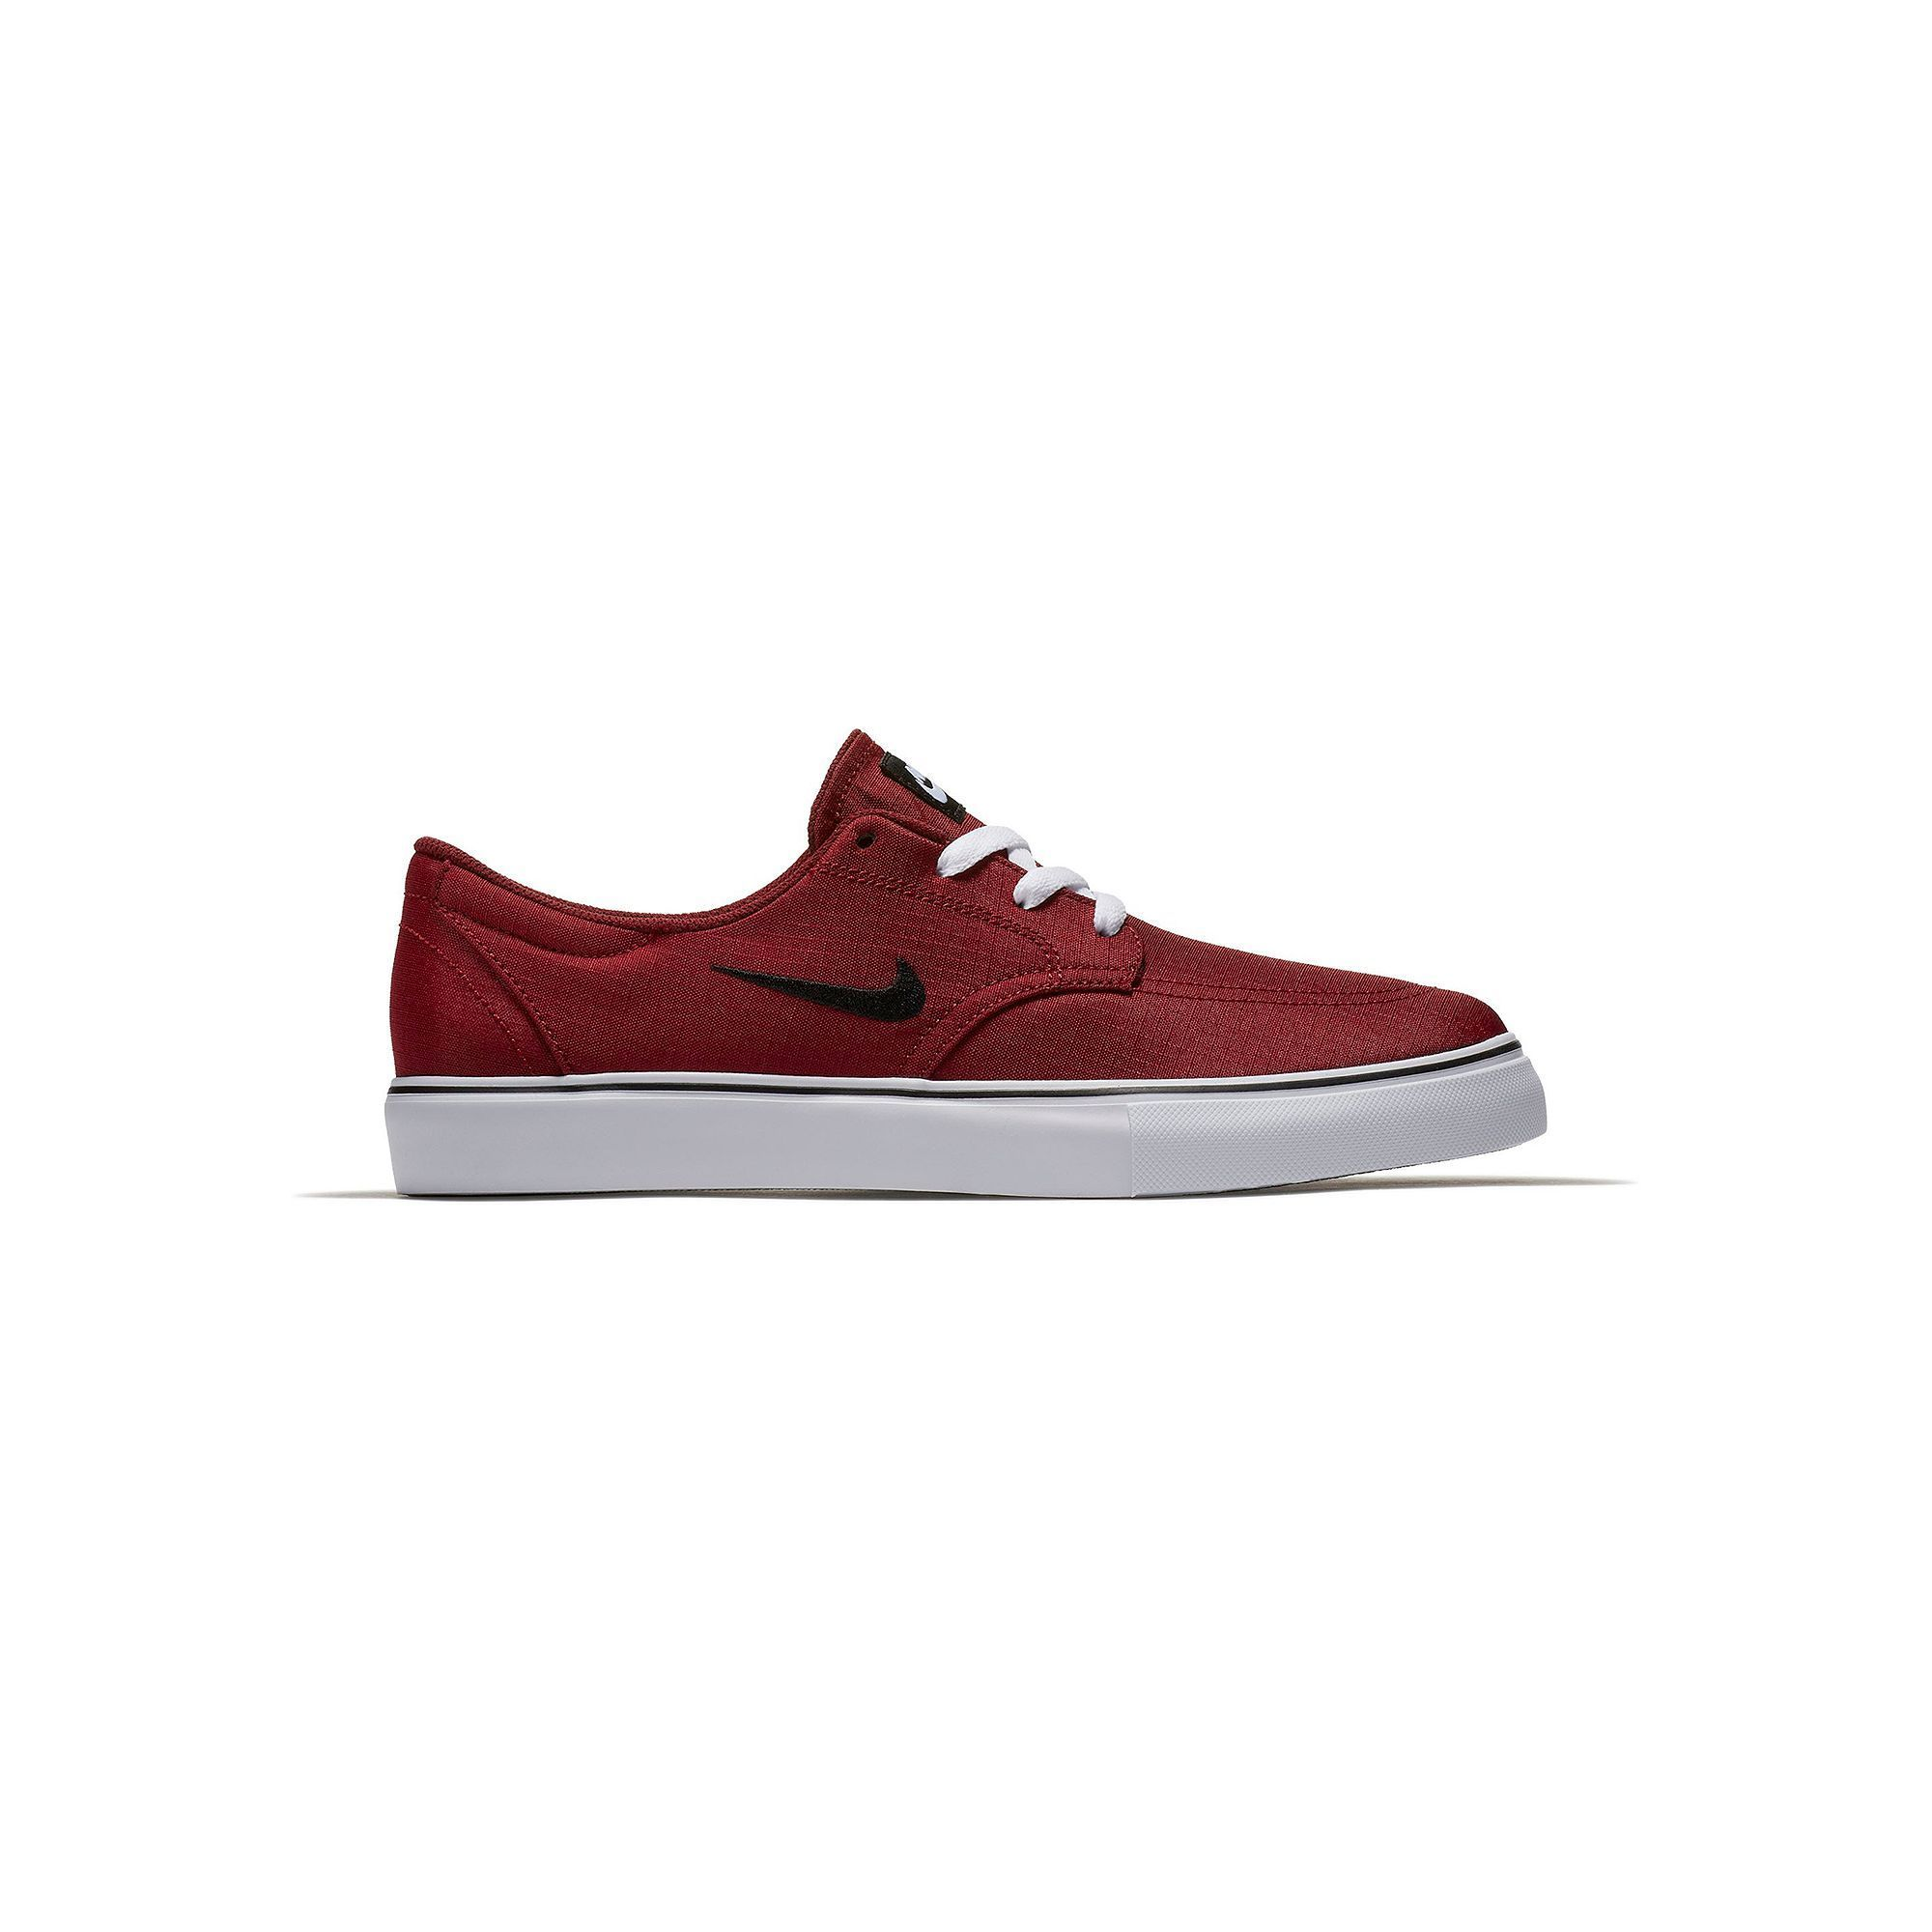 premium selection 8a692 49912 Nike SB Clutch Men s Skate Shoes, Size  11.5, Dark Red